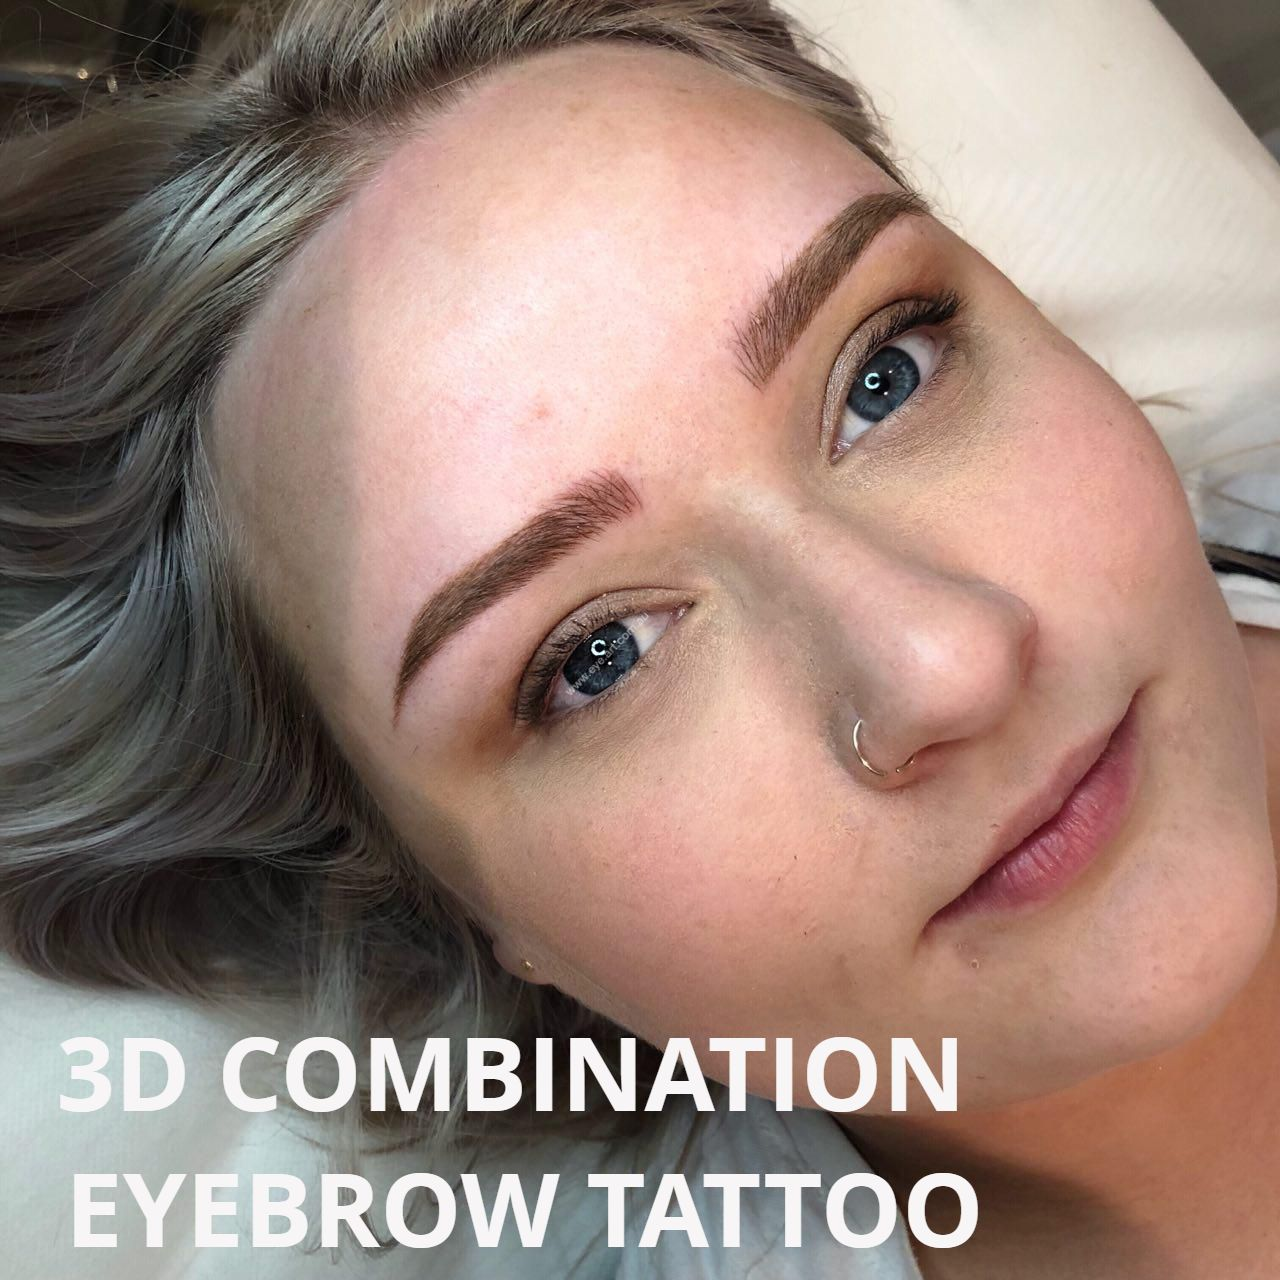 Eyebrow Tattoo, Eyebrow Tattoo Melbourne, Brow Tattoo, Brow Tattoo Melbourne, Best Eyebrow Tattoo Melbourne